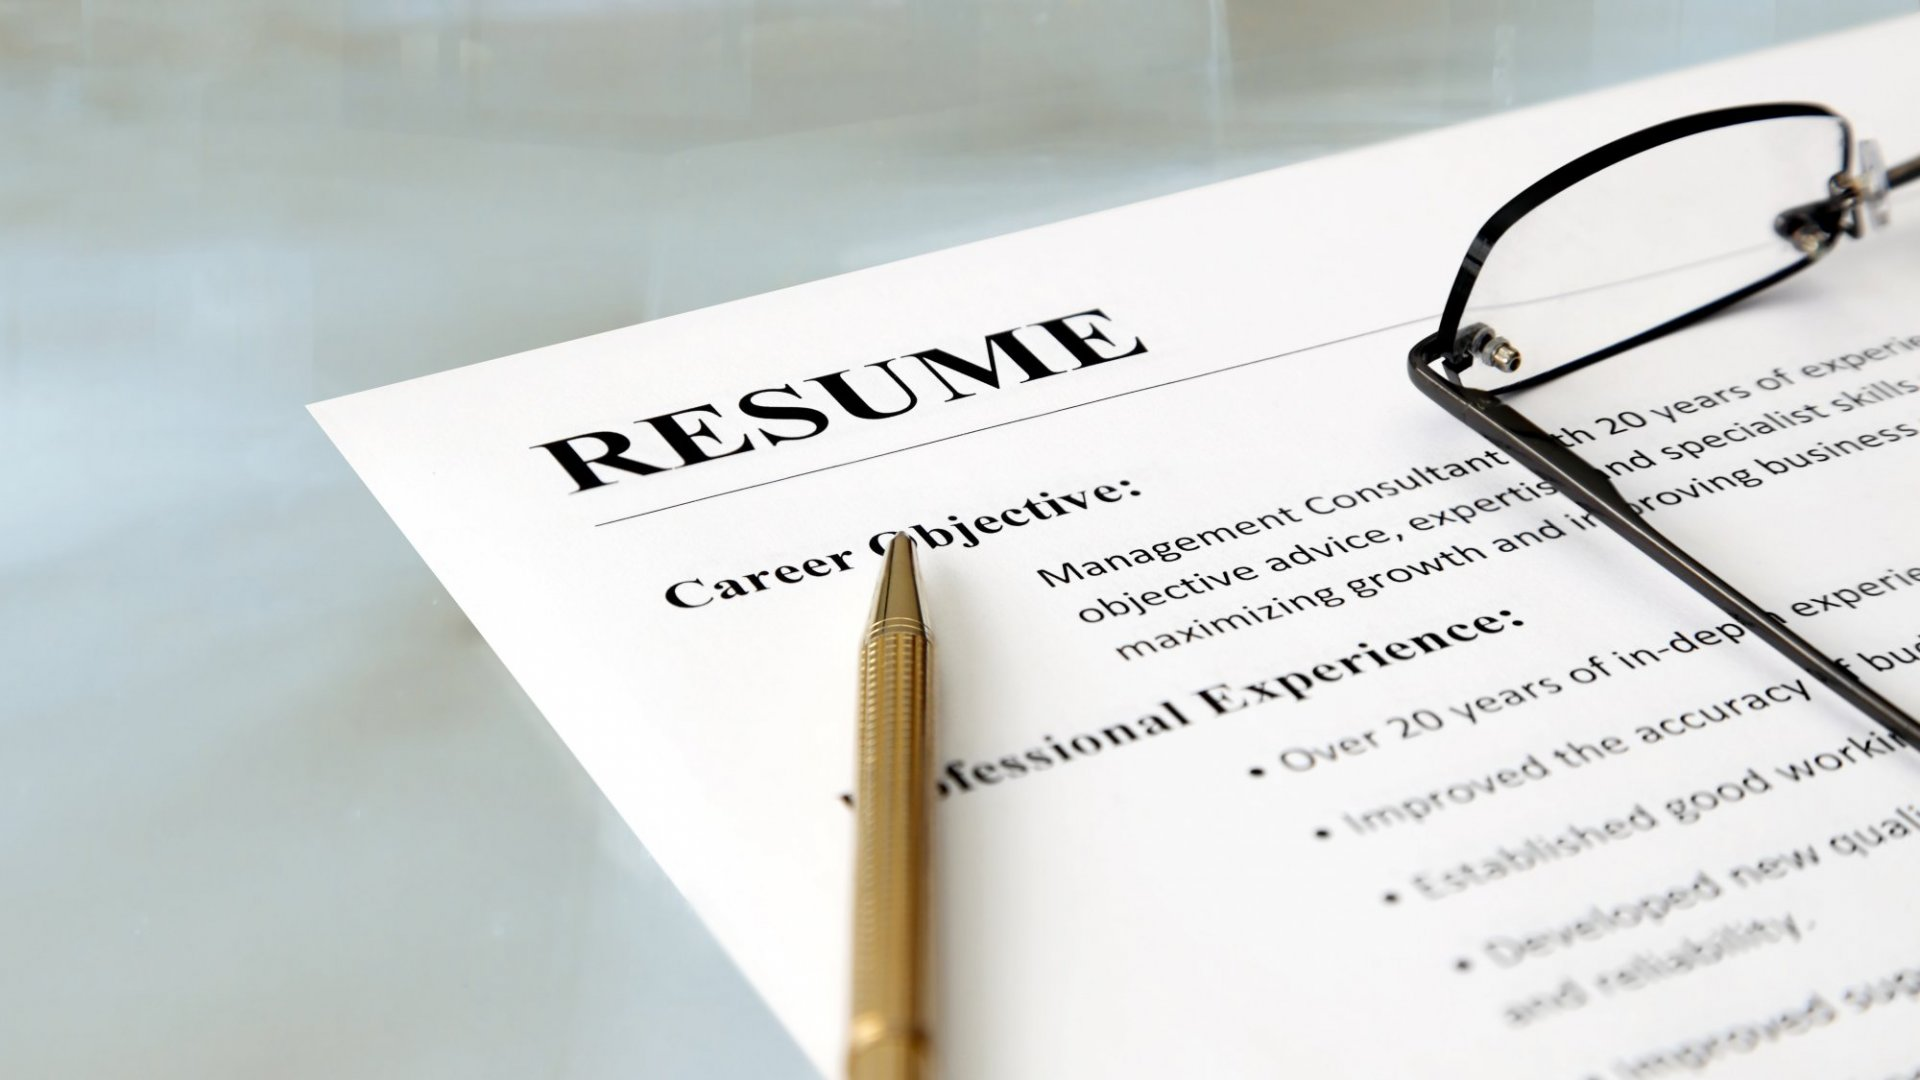 6 Mistakes You Can't Afford to Make on a Tech Resume